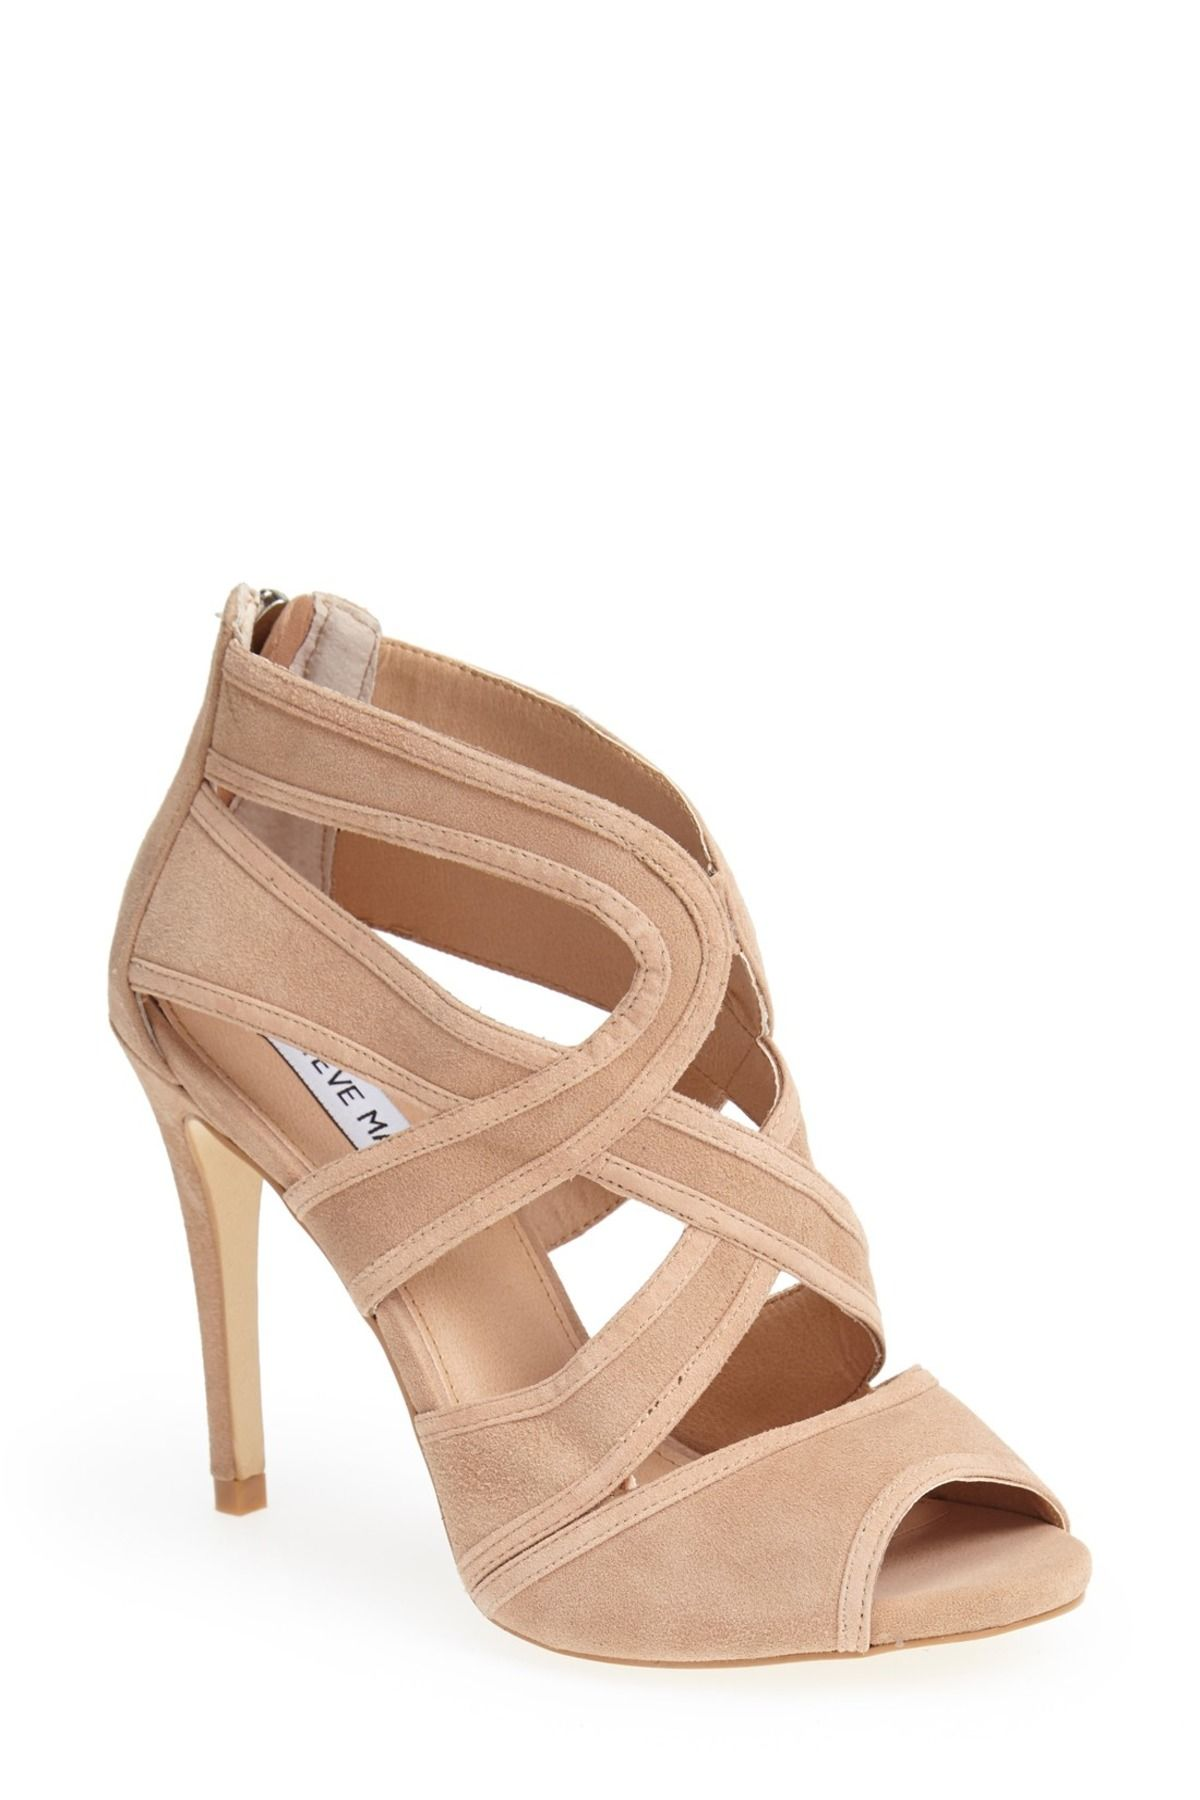 7dc48cb395b  Immence +Suede+Sandal+by+Steve+Madden+on+ nordstrom rack.